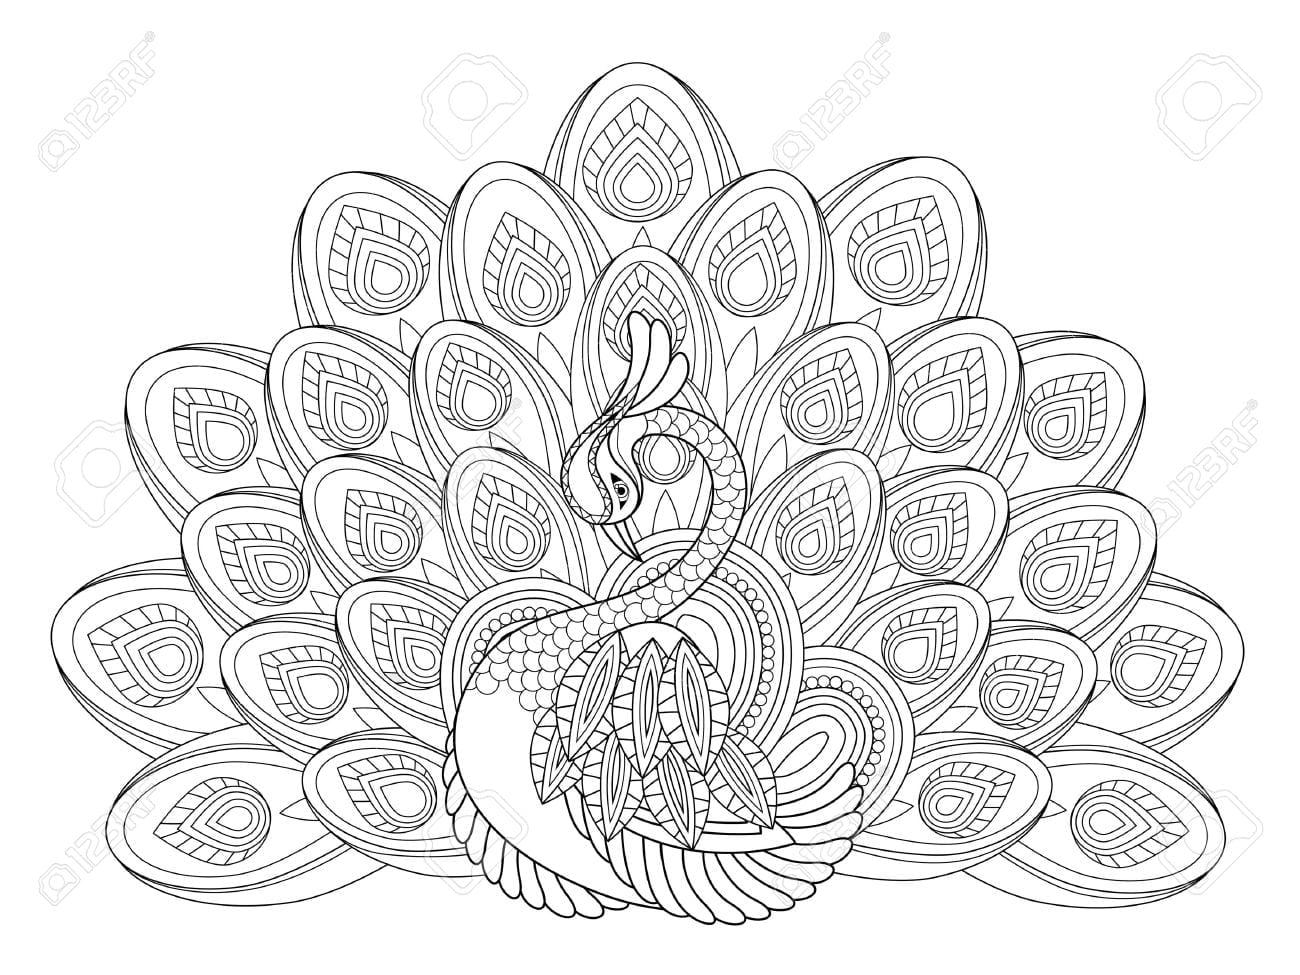 Emerging Peacock Coloring Sheet Pages For Adul  13883